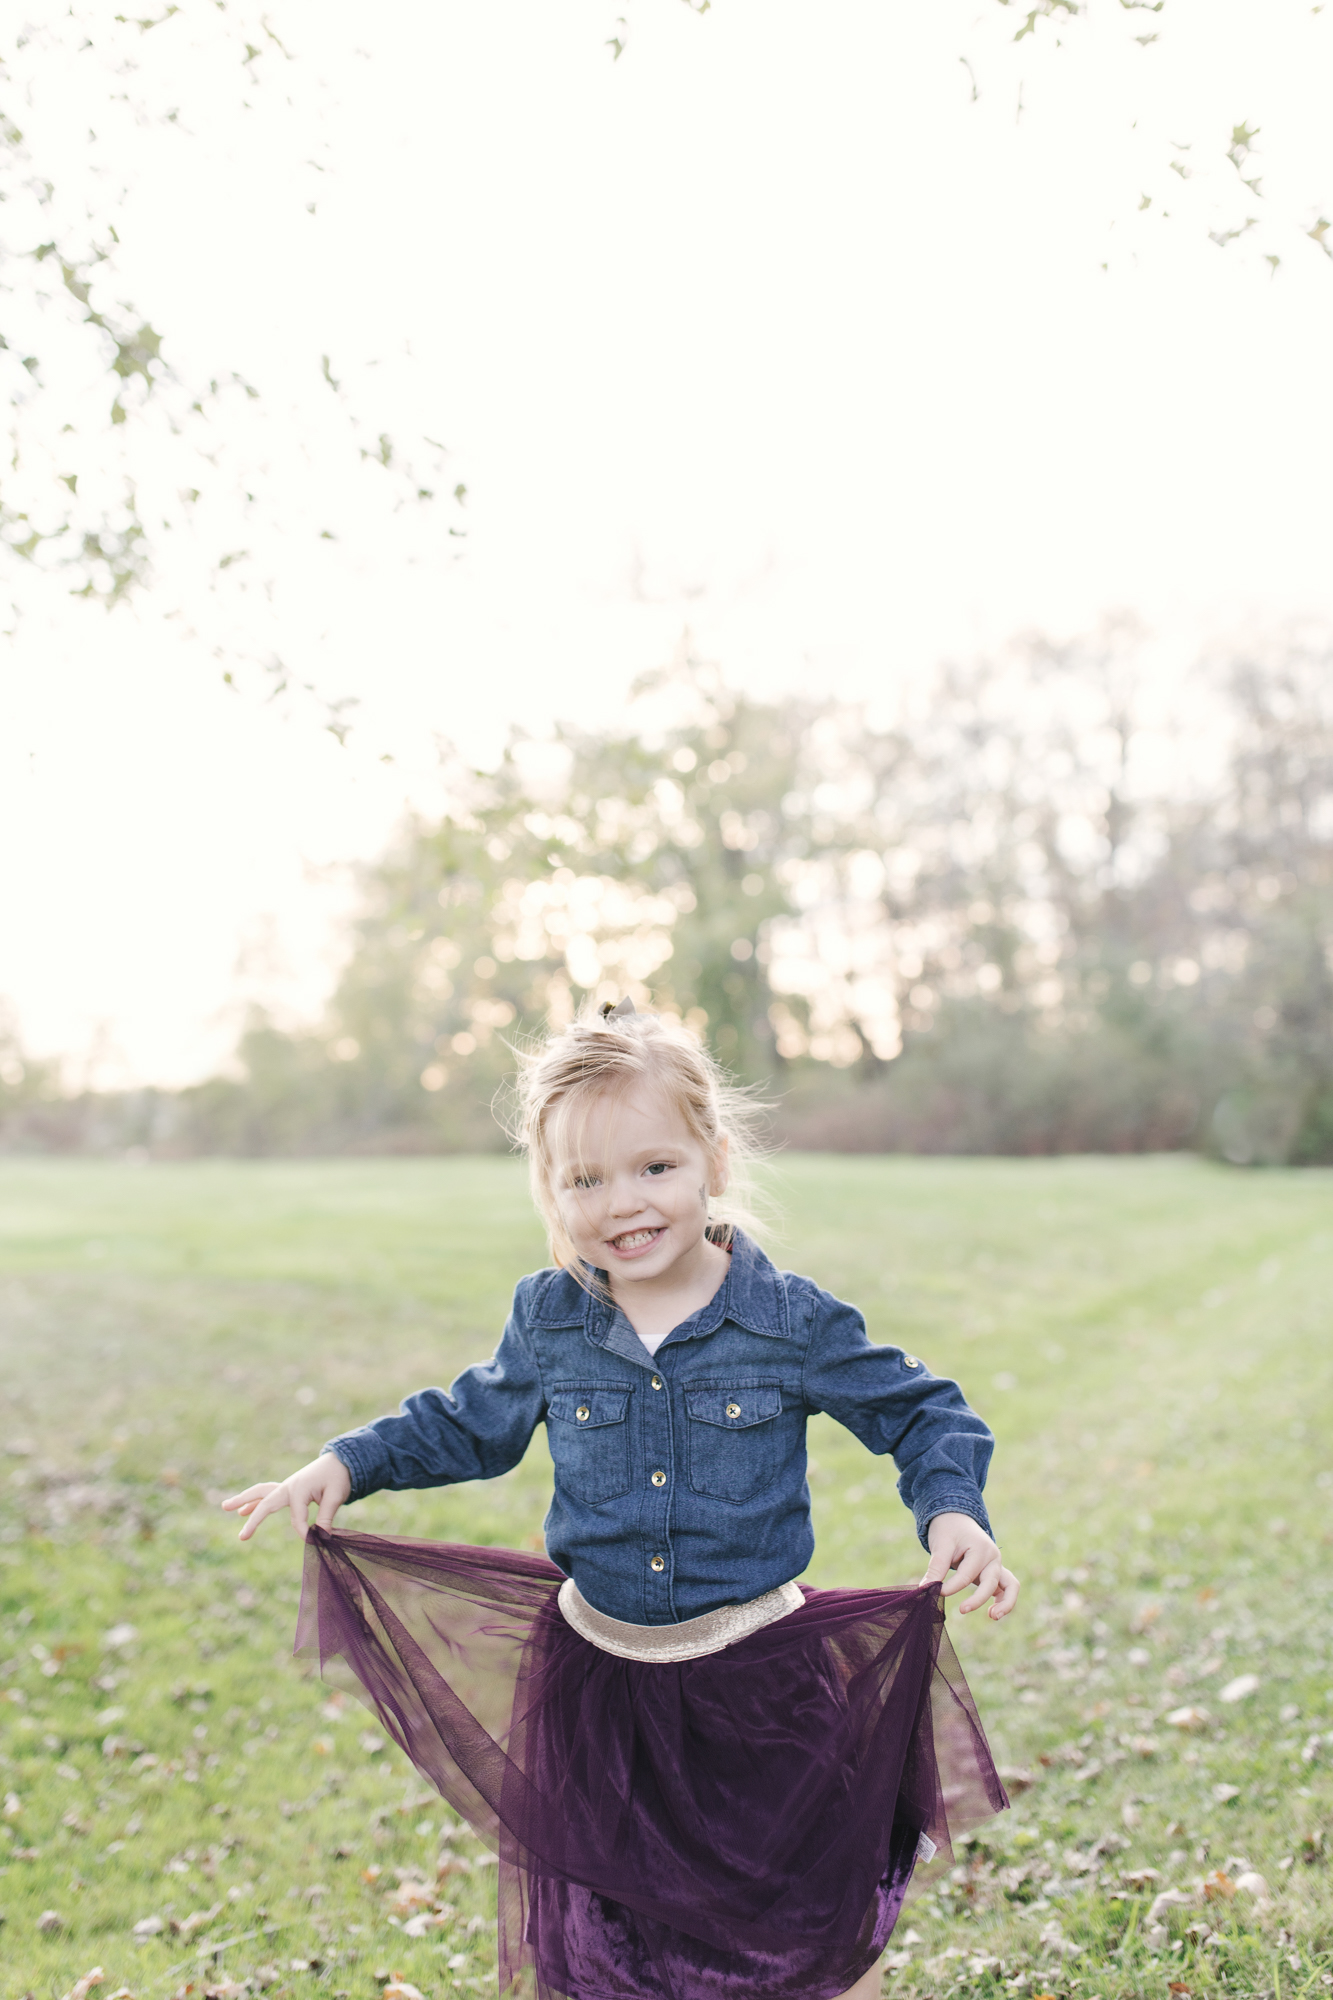 about me section for warren ohio marternity family and newborn photographer christie leigh photo in cortland ohio and sharon pennsylvania-2.jpg